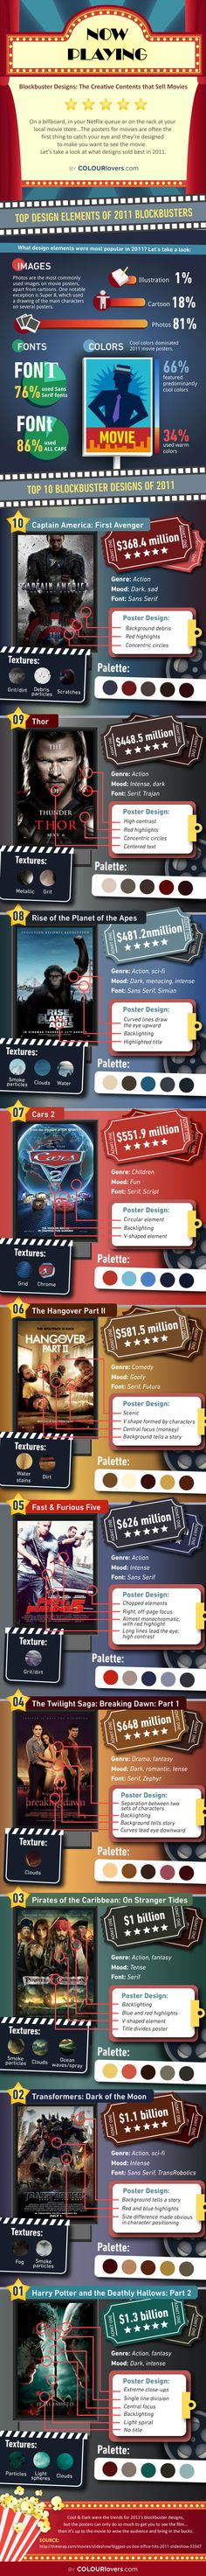 The Psychology Behind Movie Poster Designs